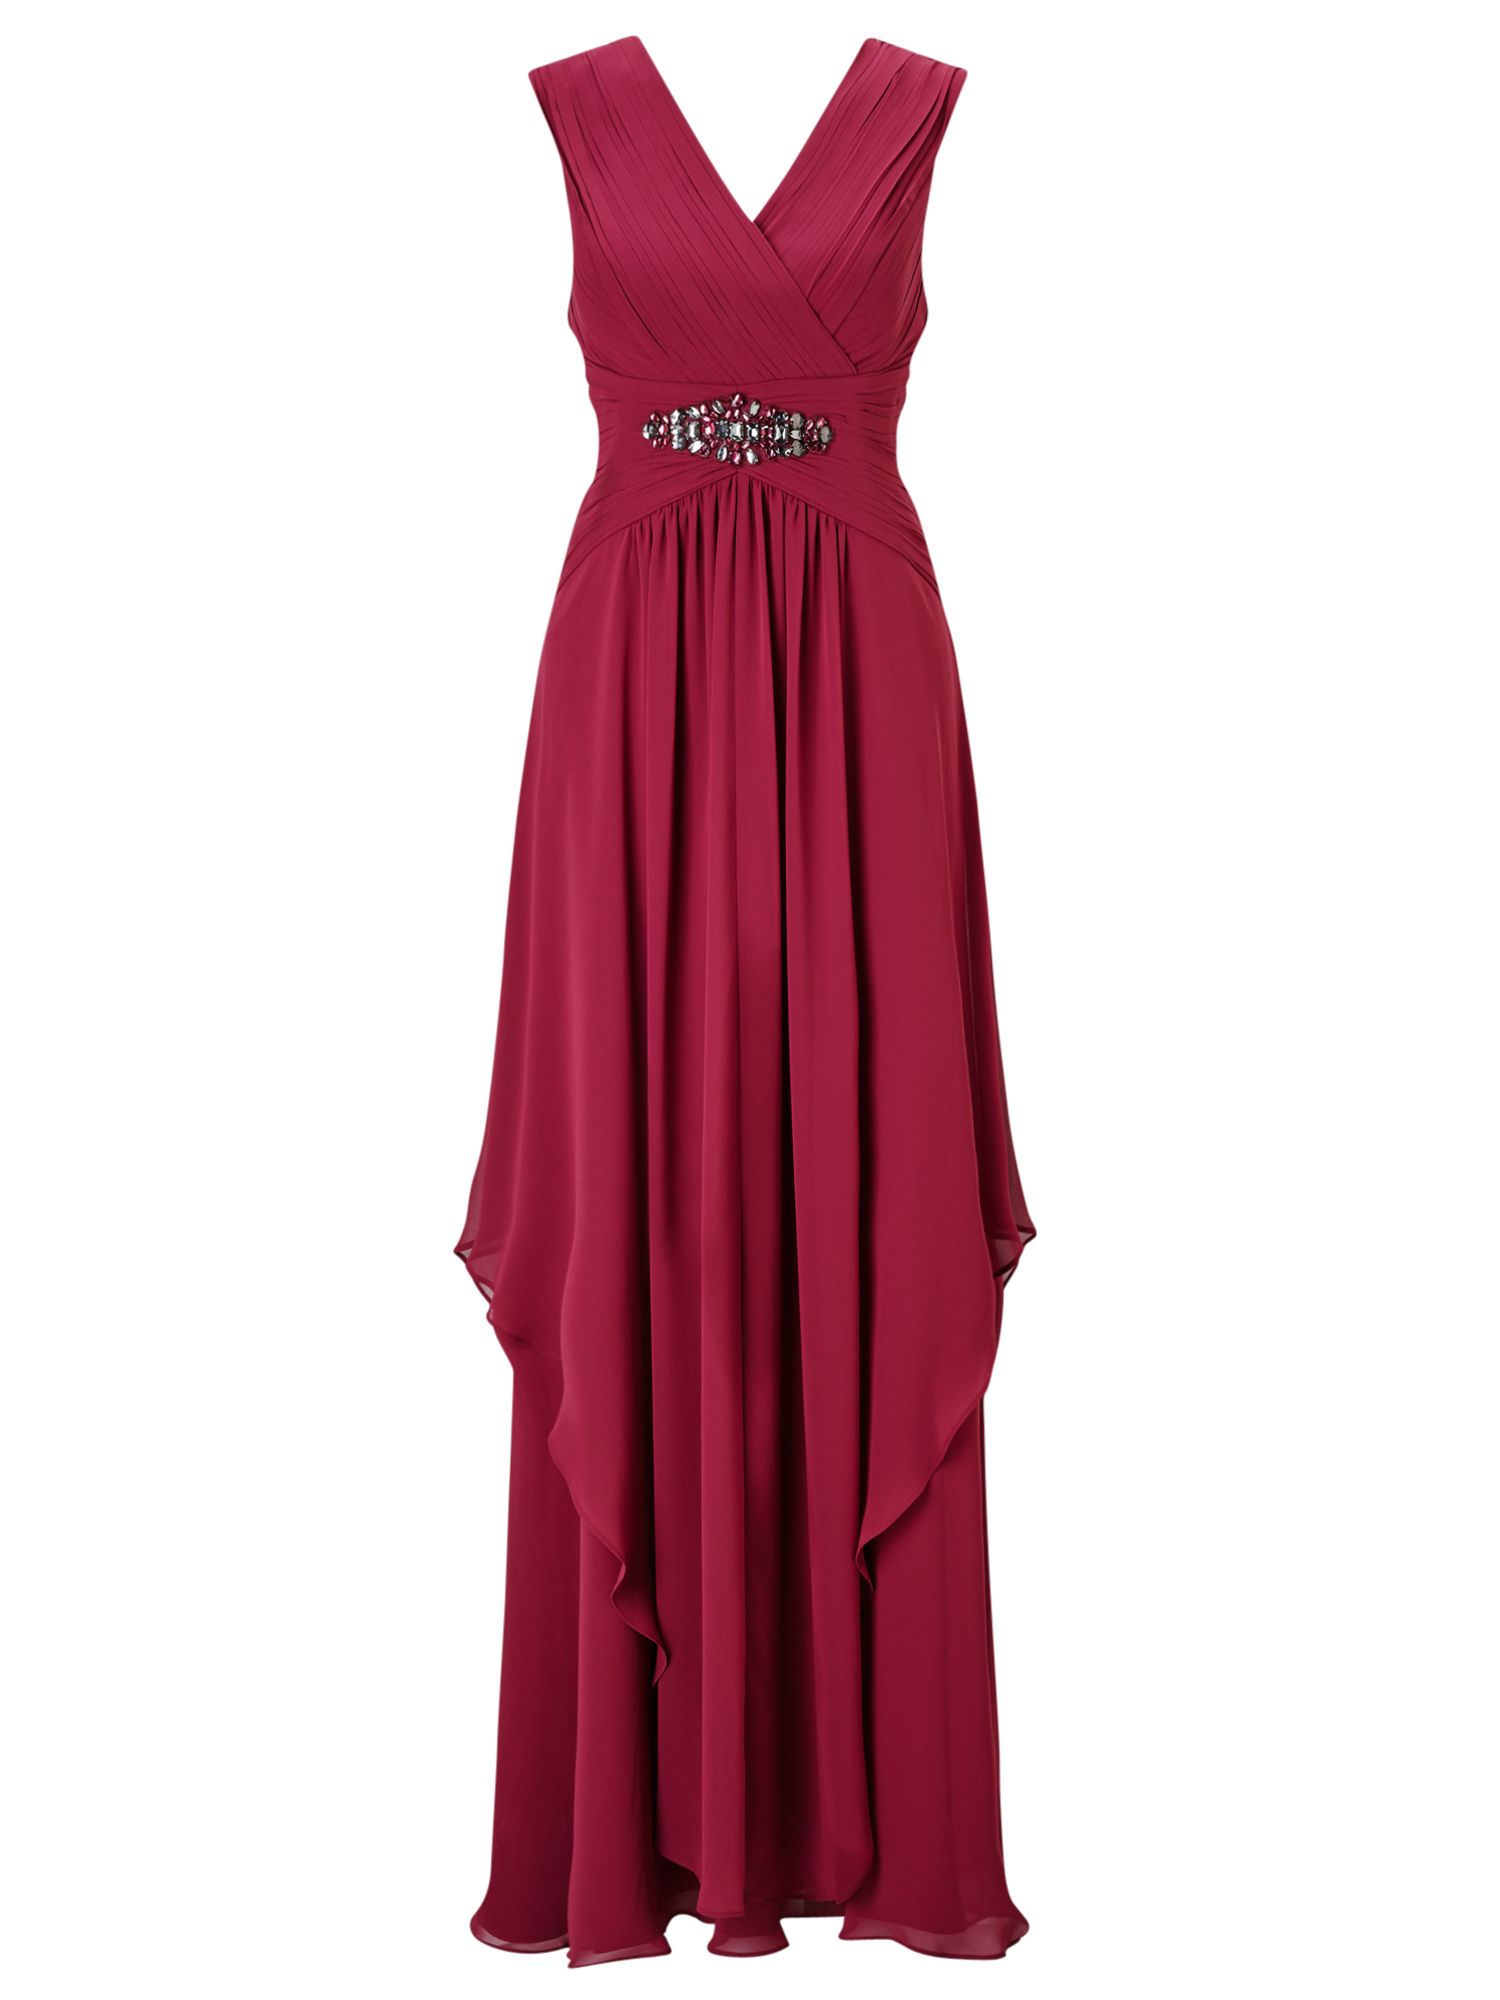 TitanicStyleDressesforSale Jacques Vert Maxi Hanky Hem Dress Red £99.00 AT vintagedancer.com